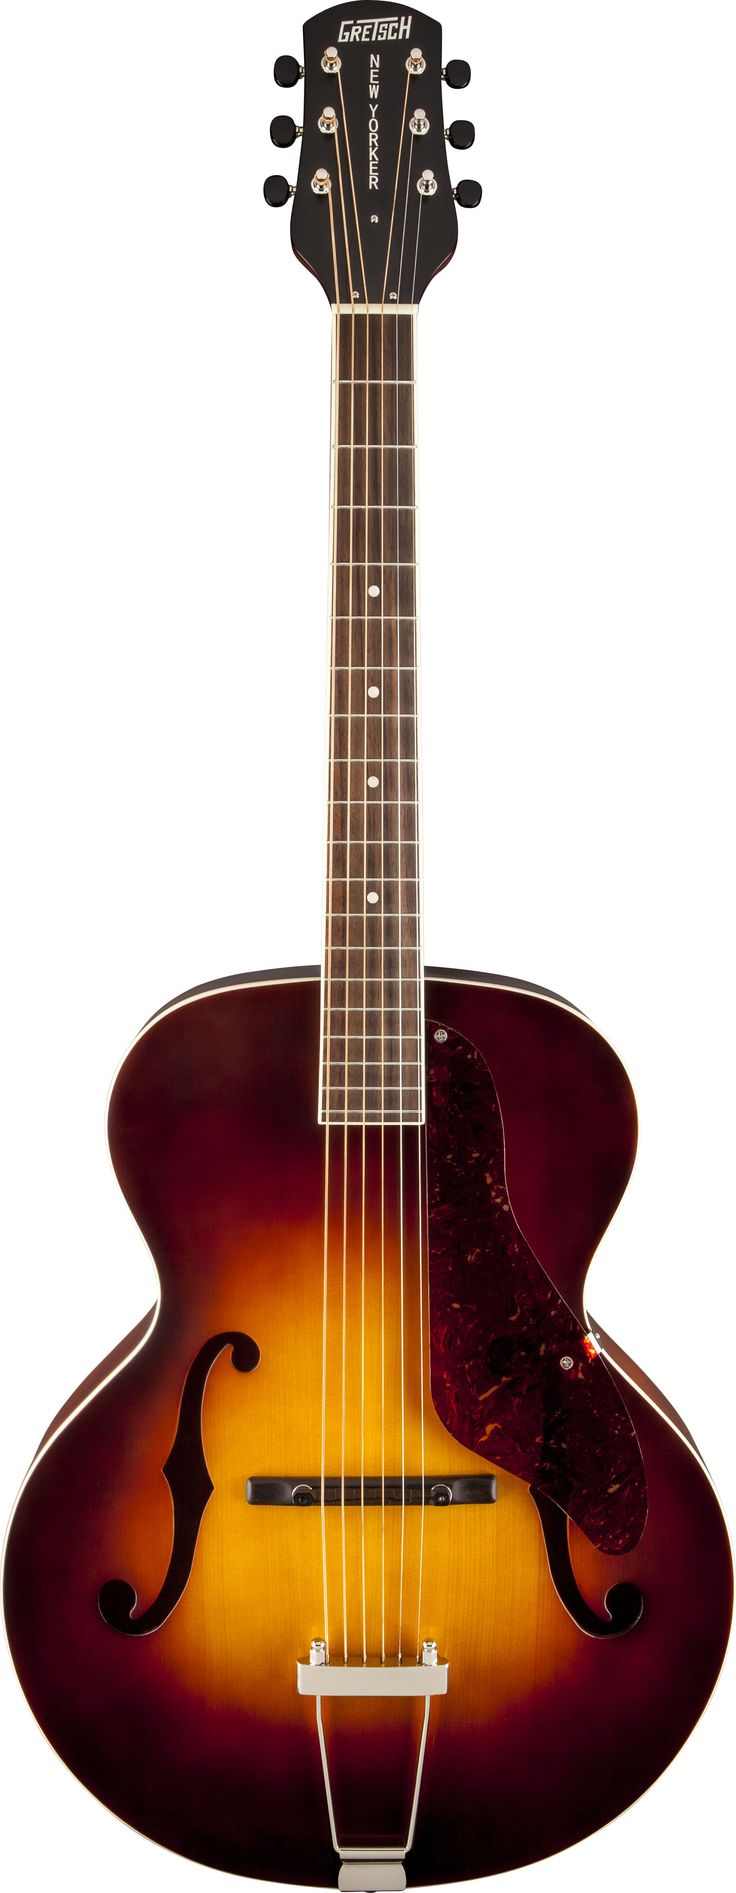 gretsch introduces new and improved 2014 roots collection gear talk guitar archtop guitar. Black Bedroom Furniture Sets. Home Design Ideas